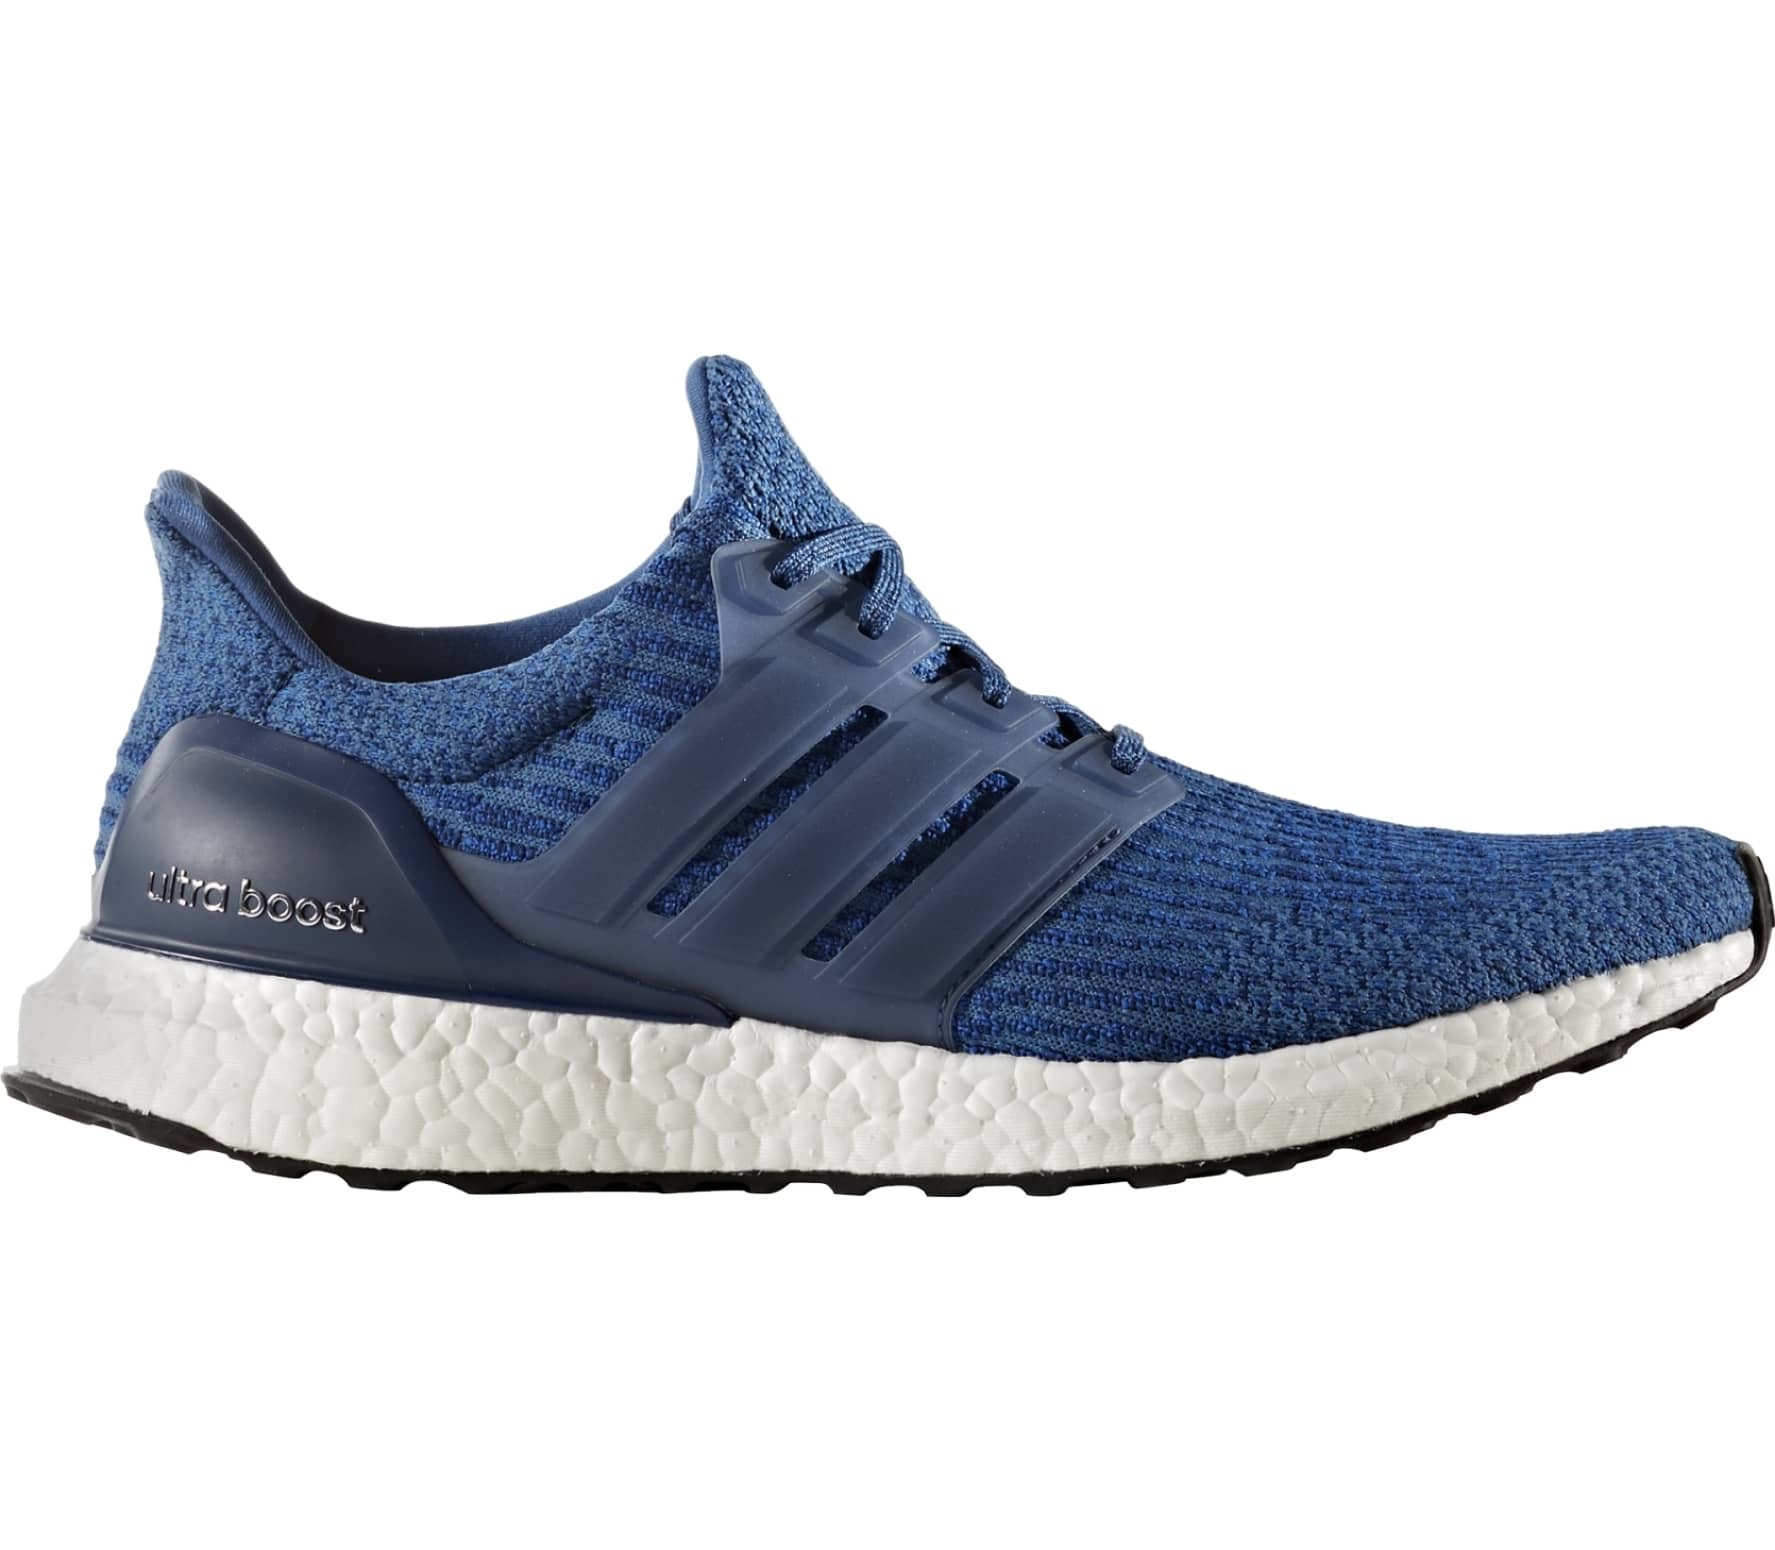 on sale 72db5 52bac Adidas - Ultra Boost chaussures de running pour hommes (bleublanc)